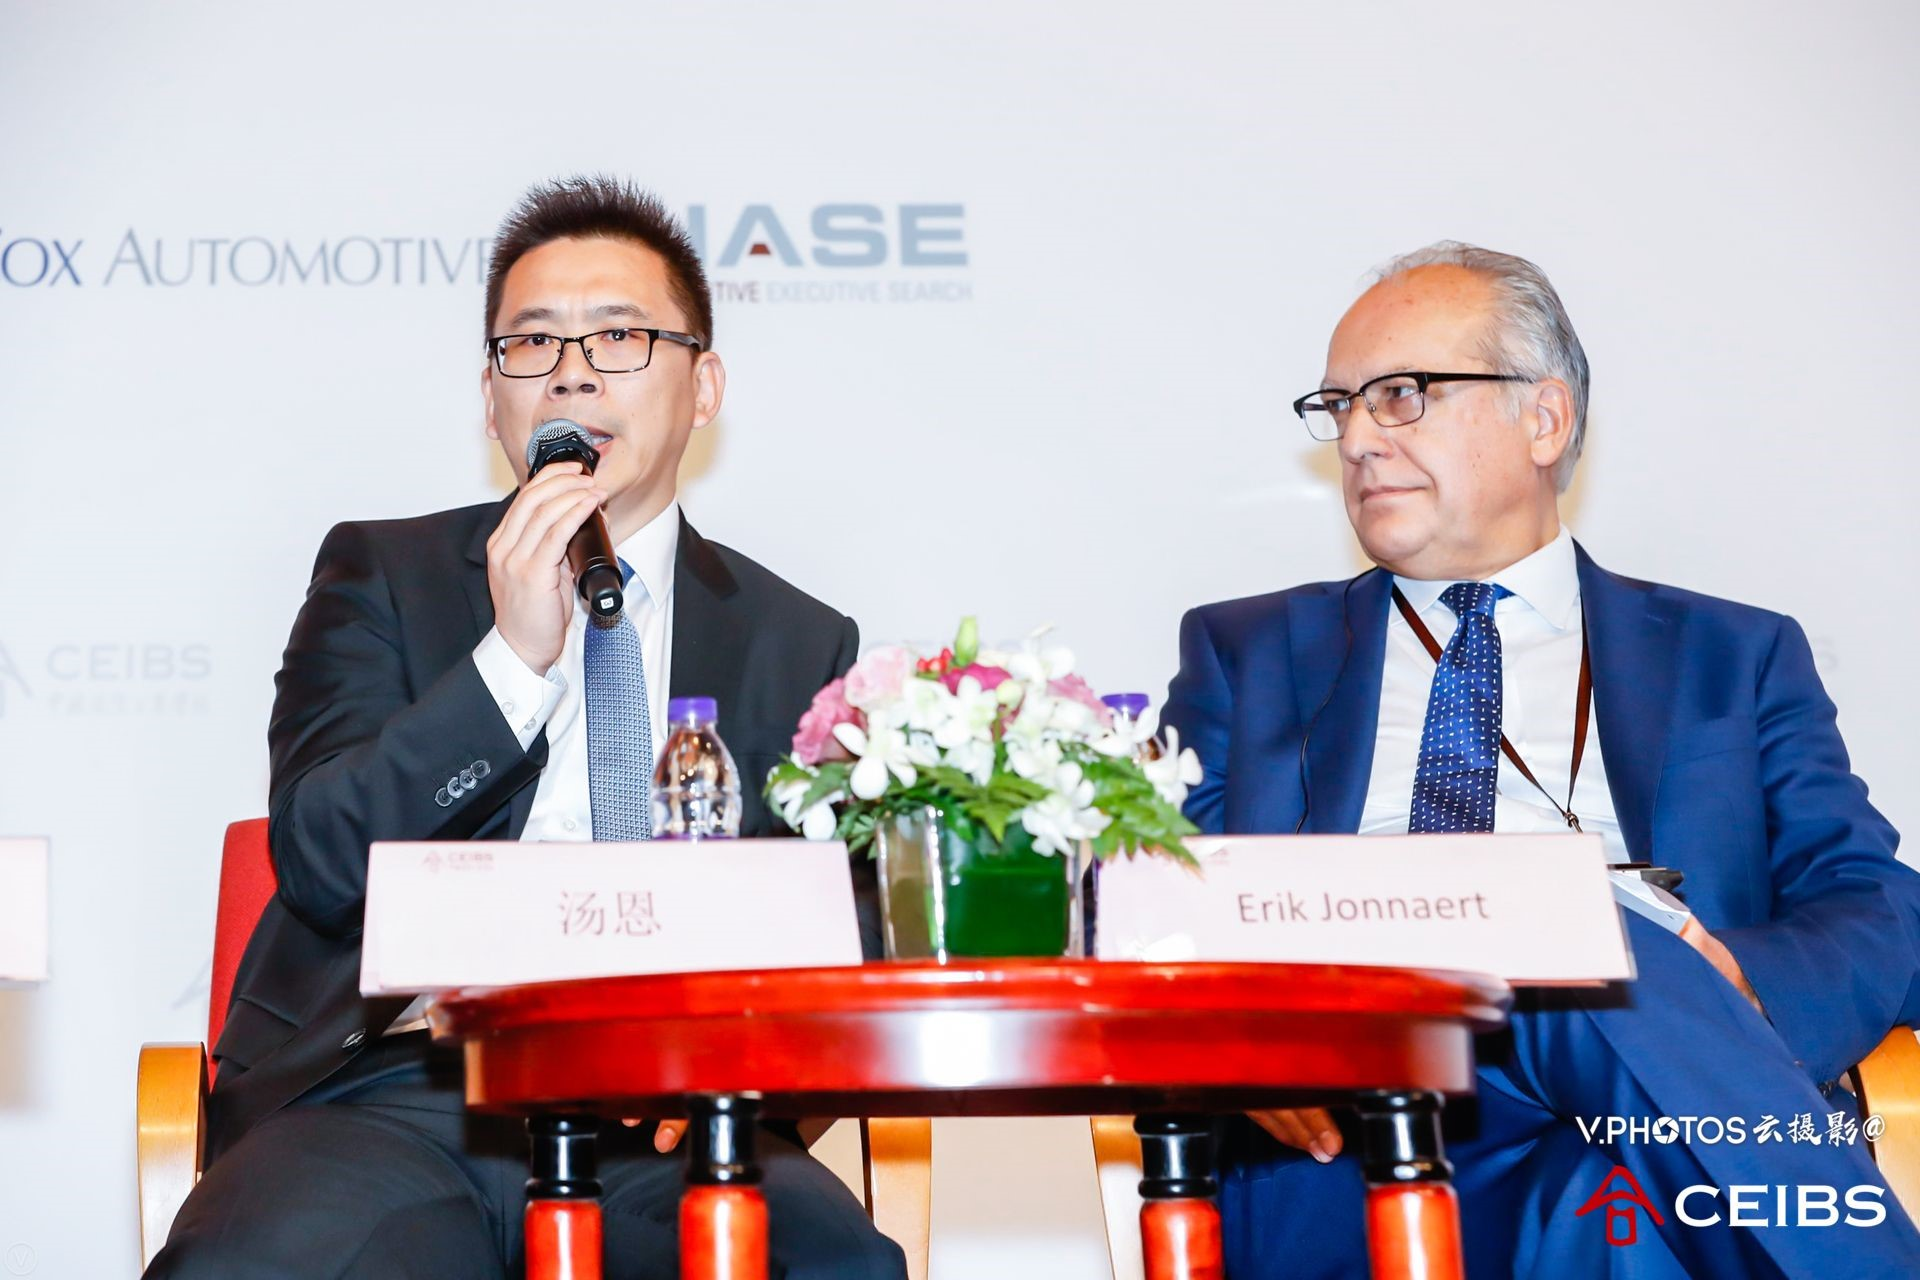 Mr. Enno Tang, President and CEO, Continental China (left) and Mr. Erik Jonnaert, Secretary General, European Automobile Manufacturers Association (right).